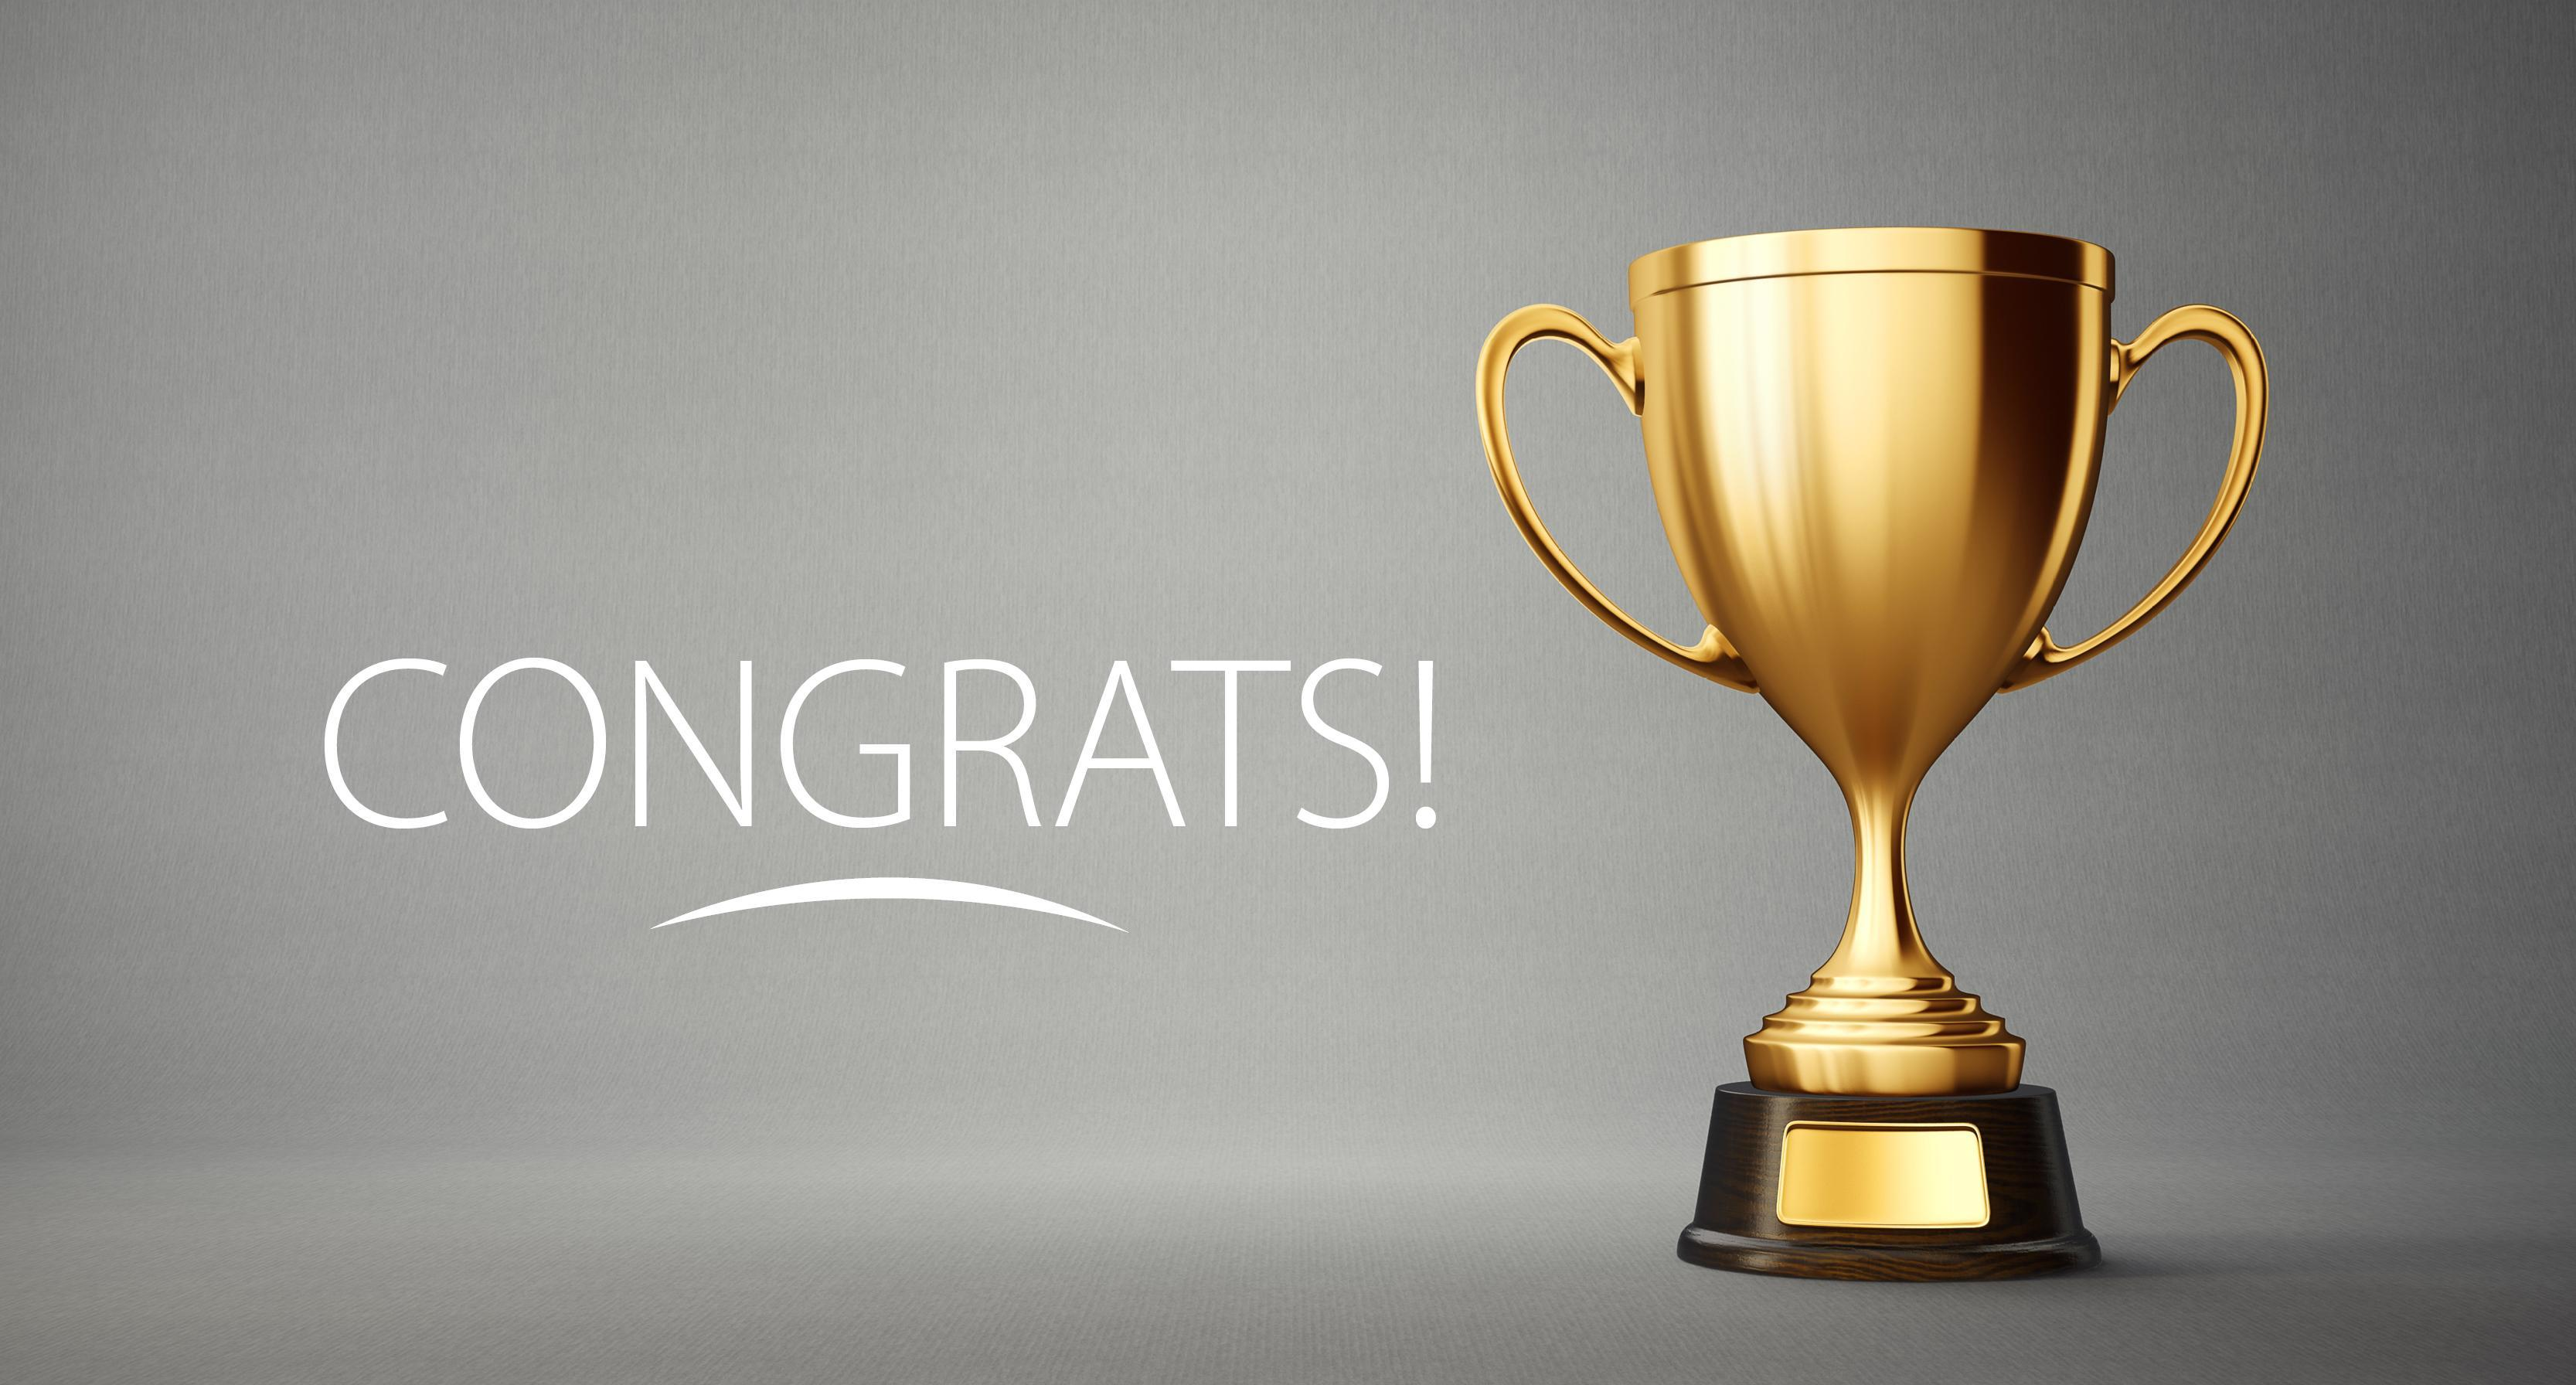 Image of a gold trophy with text that reads: CONGRATS!